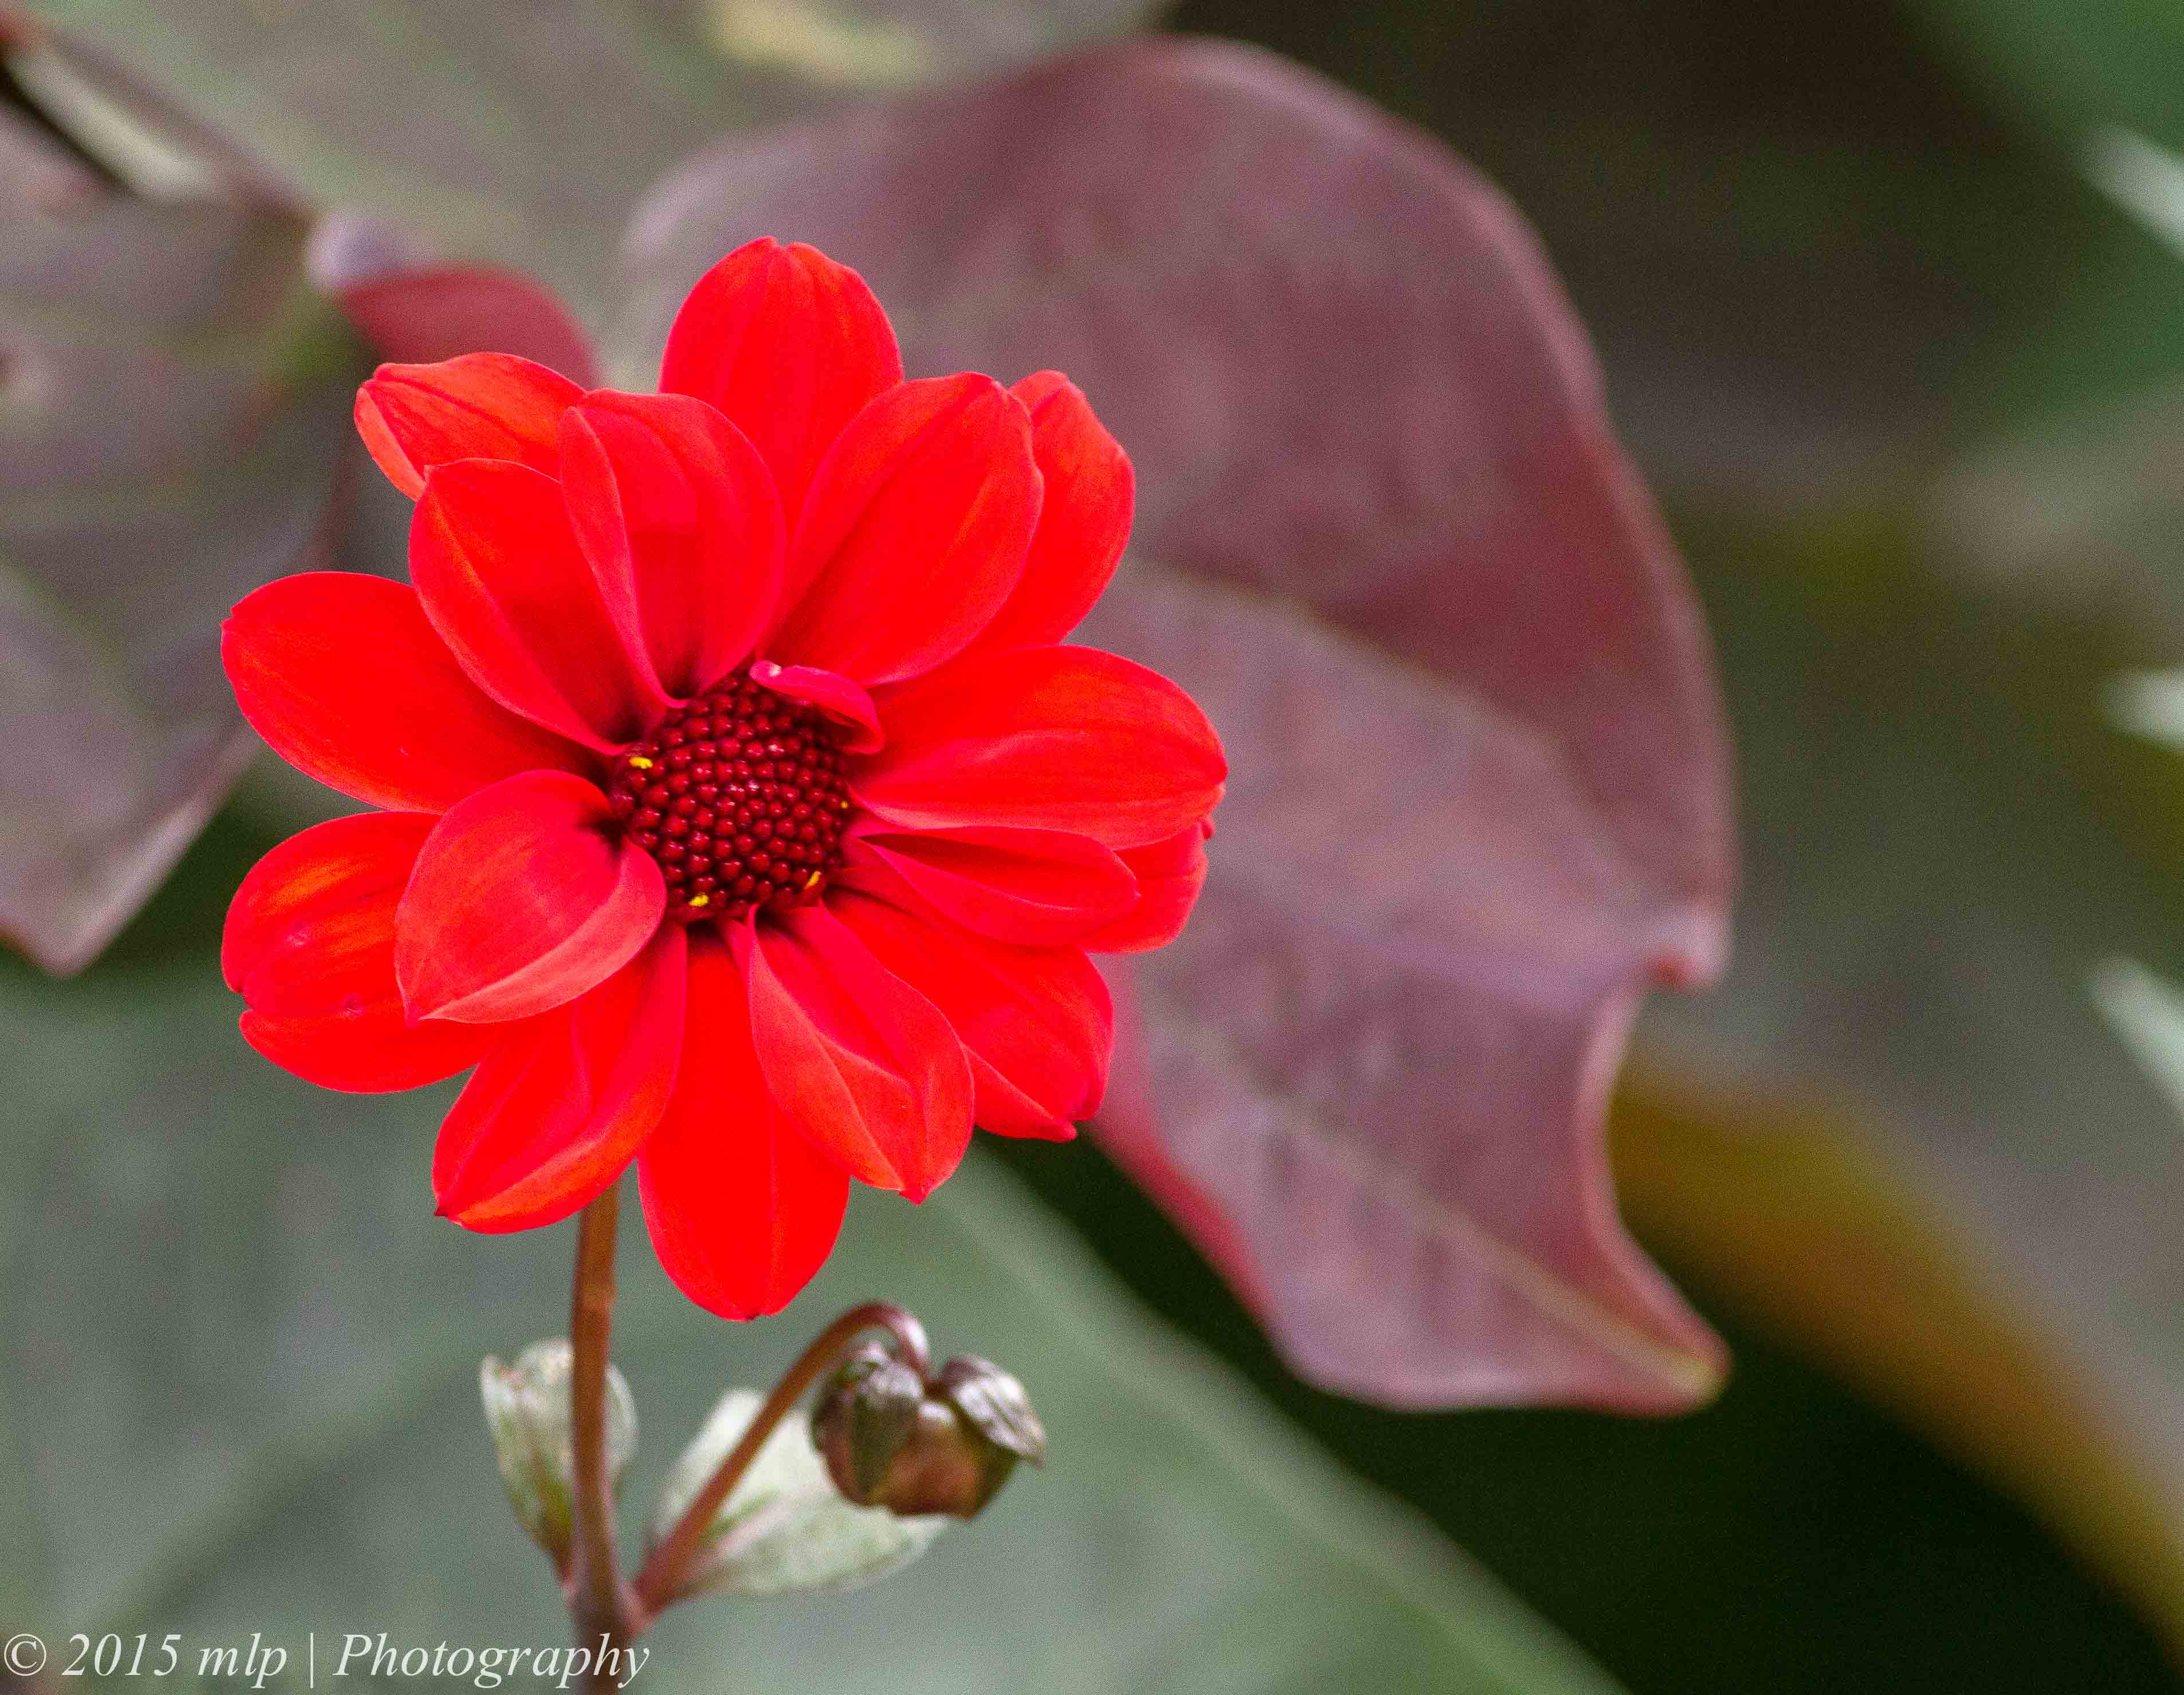 Flowers | The Gap Year and Beyond